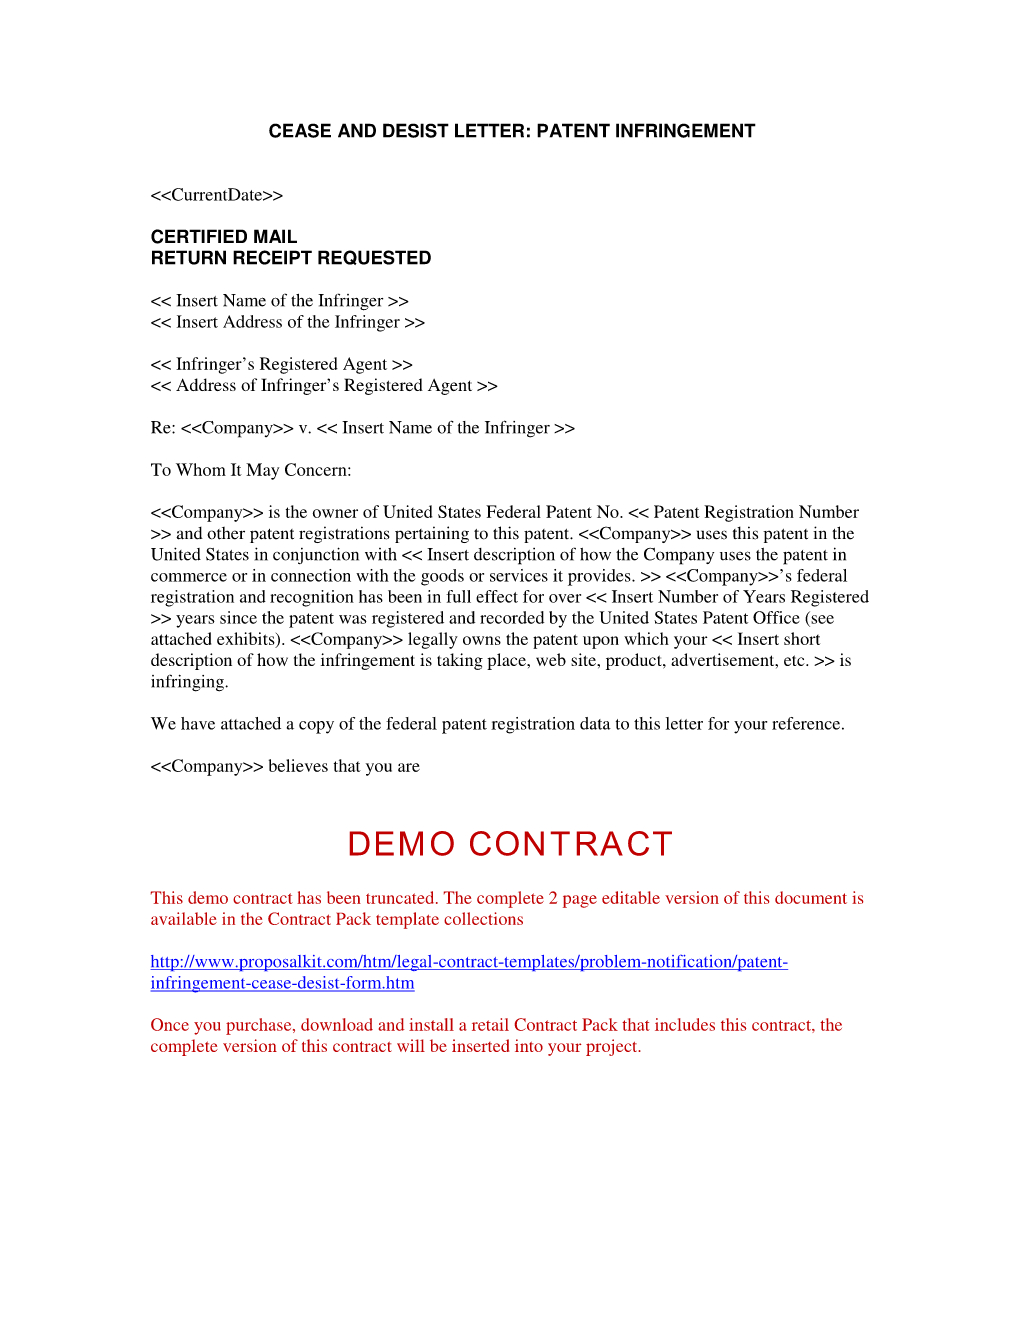 Cease and Desist Letter Trademark Infringement Template - Fresh Cease and Desist Template Your Template Collection